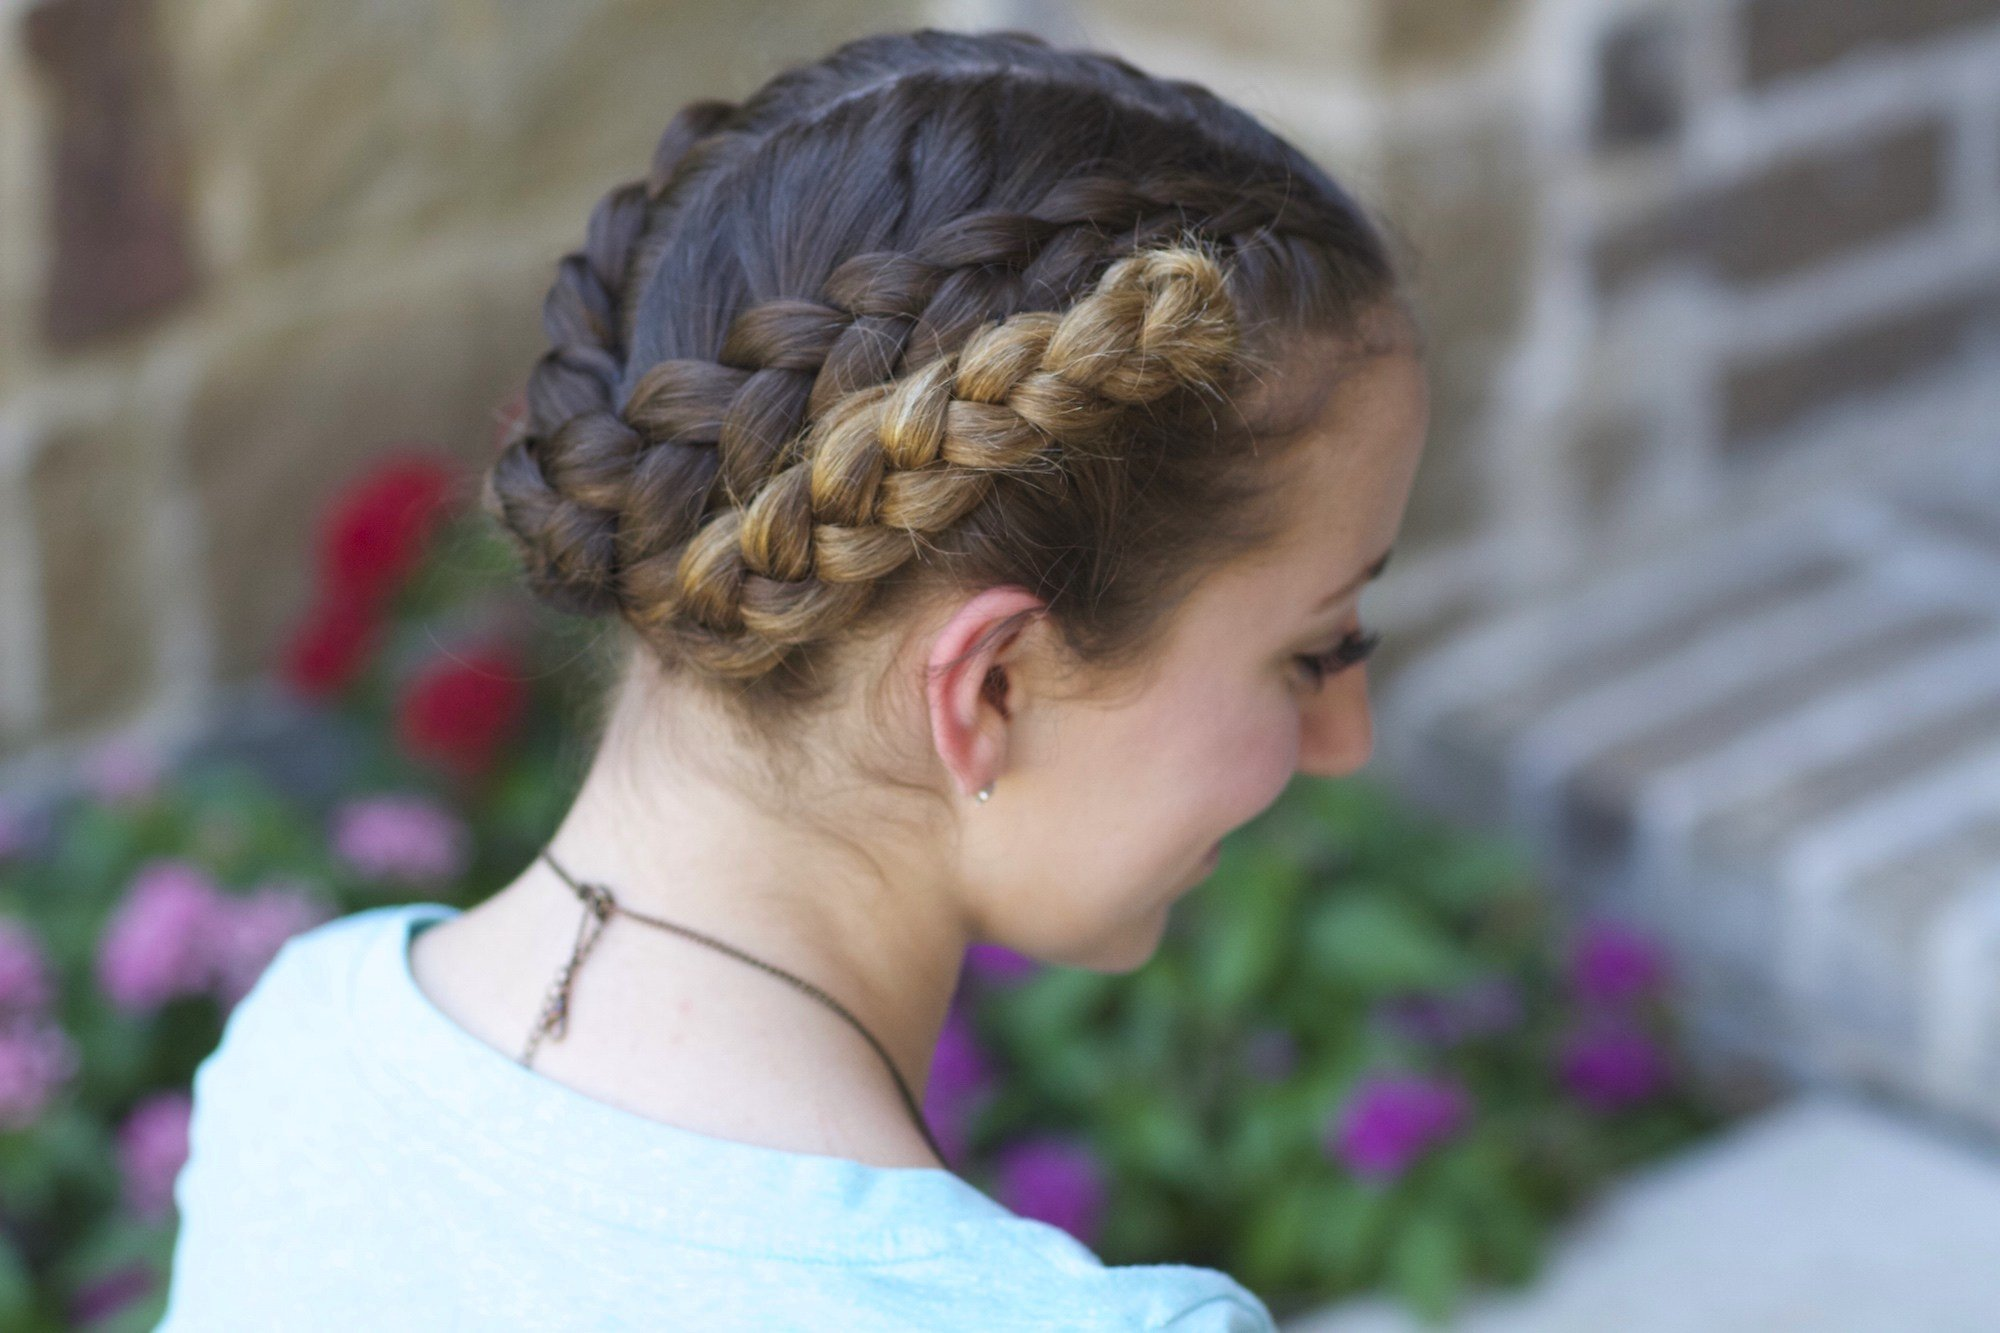 The Best Easy Fold Up Braids Back To School Hairstyles Cute Pictures